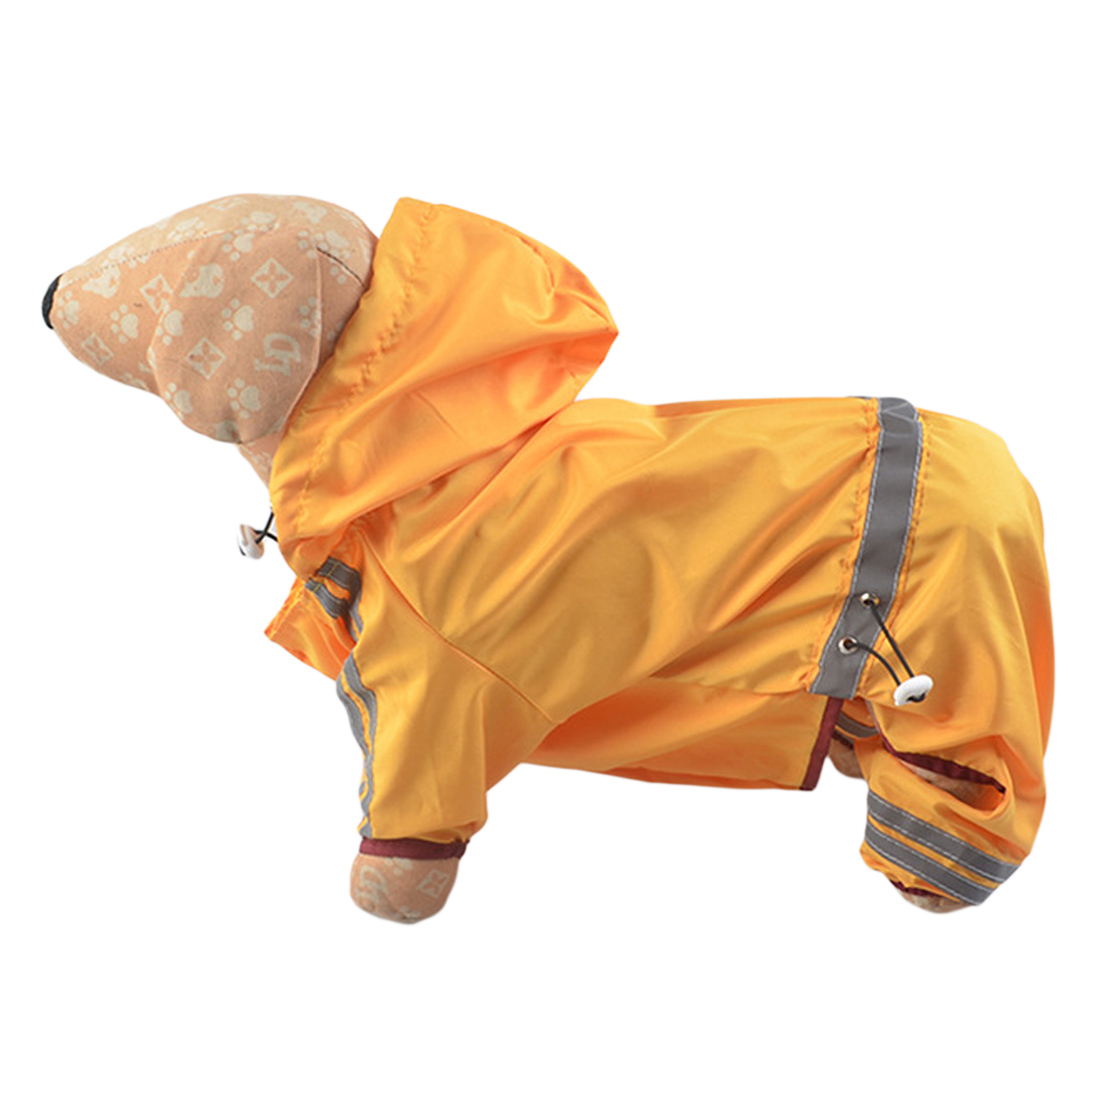 Dog Raincoat Rain Jacket Jumpsuit Waterproof Pet Clothes Safety Rain Wear For Pet Small Medium Dogs Puppy Doggy